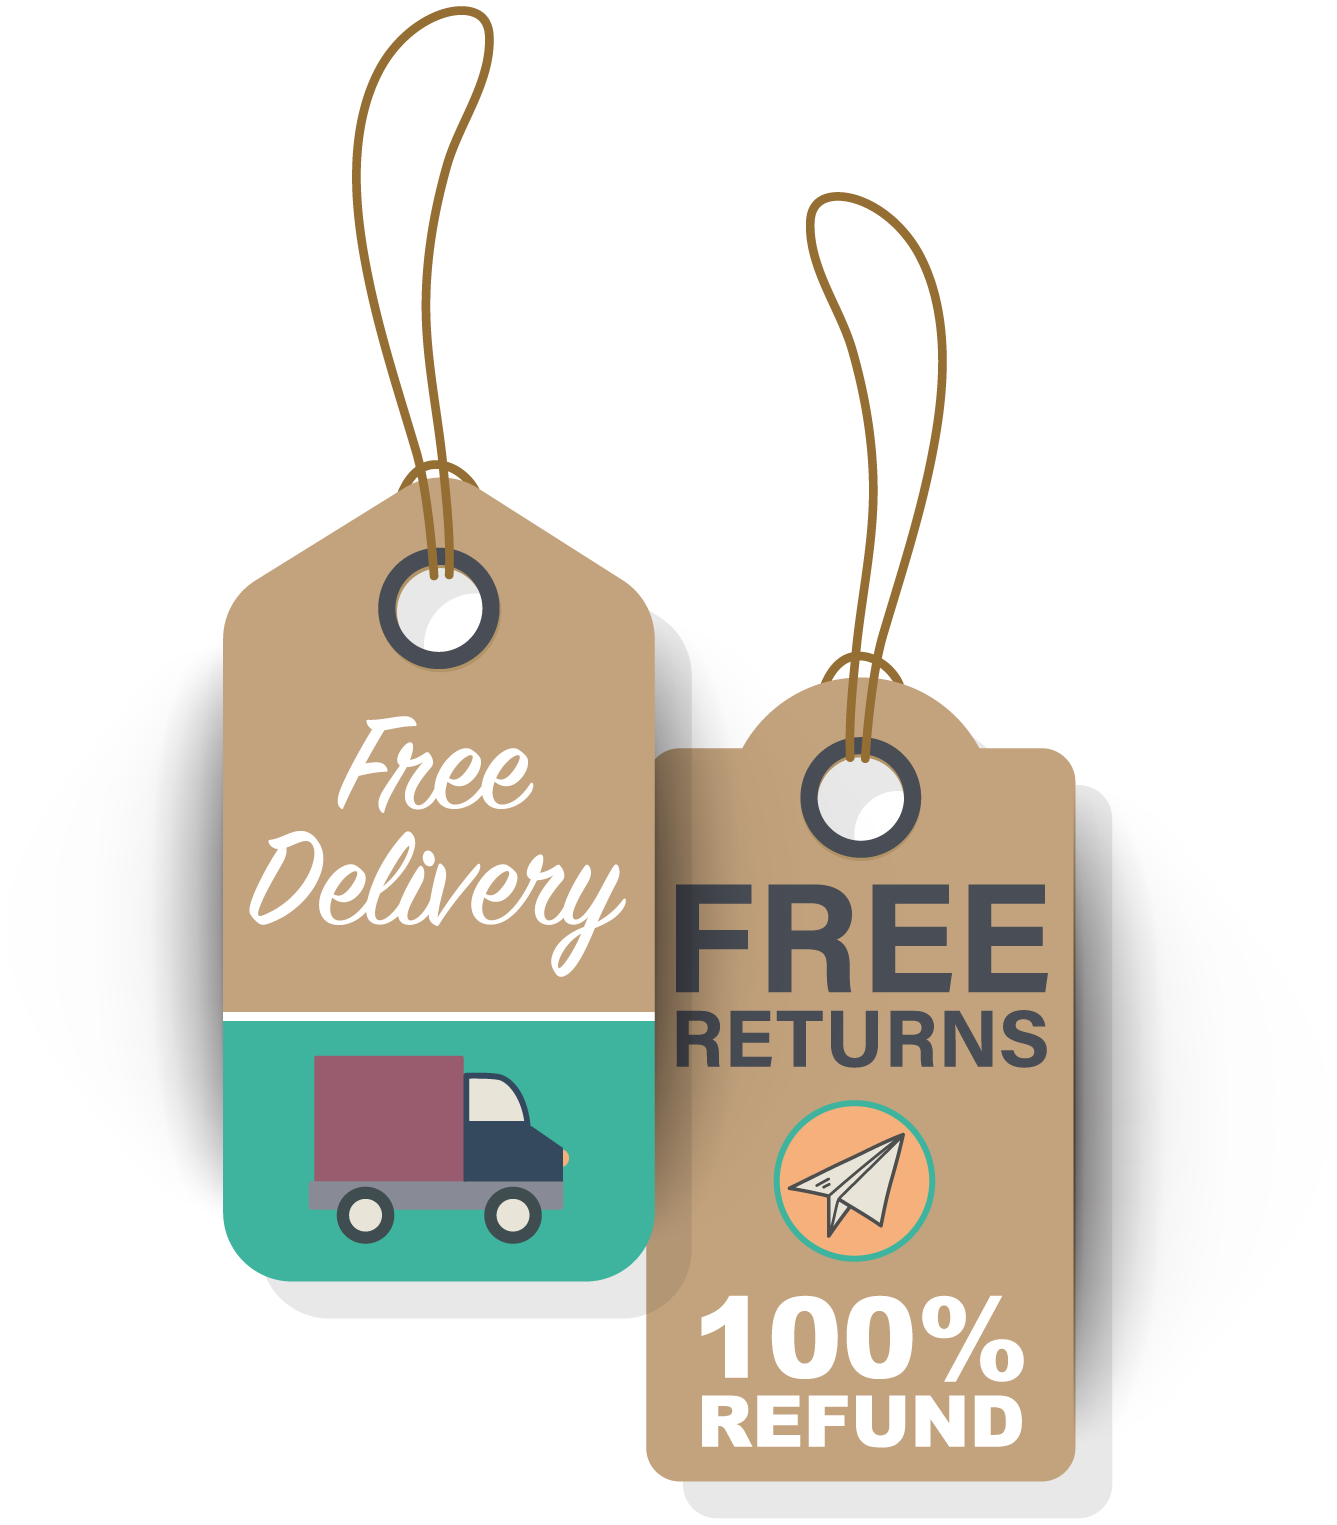 Free Delivery Free Return Tags